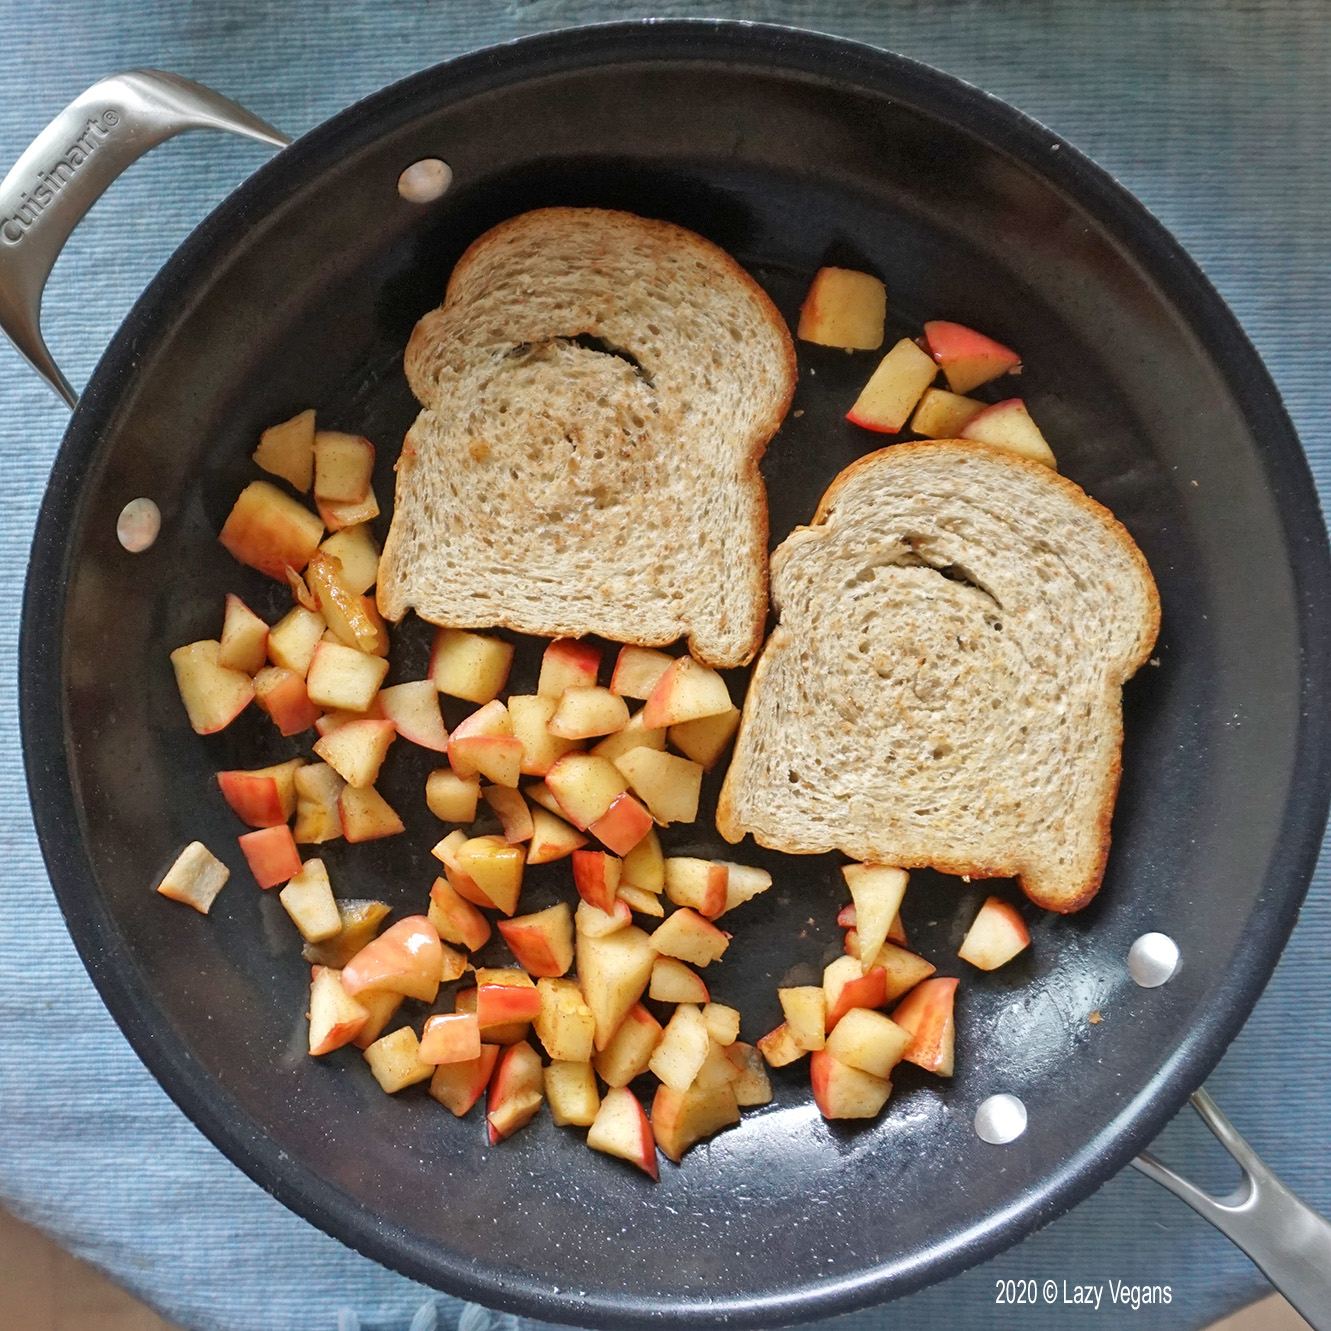 frying apple pieces and two pieces of bread in a pan